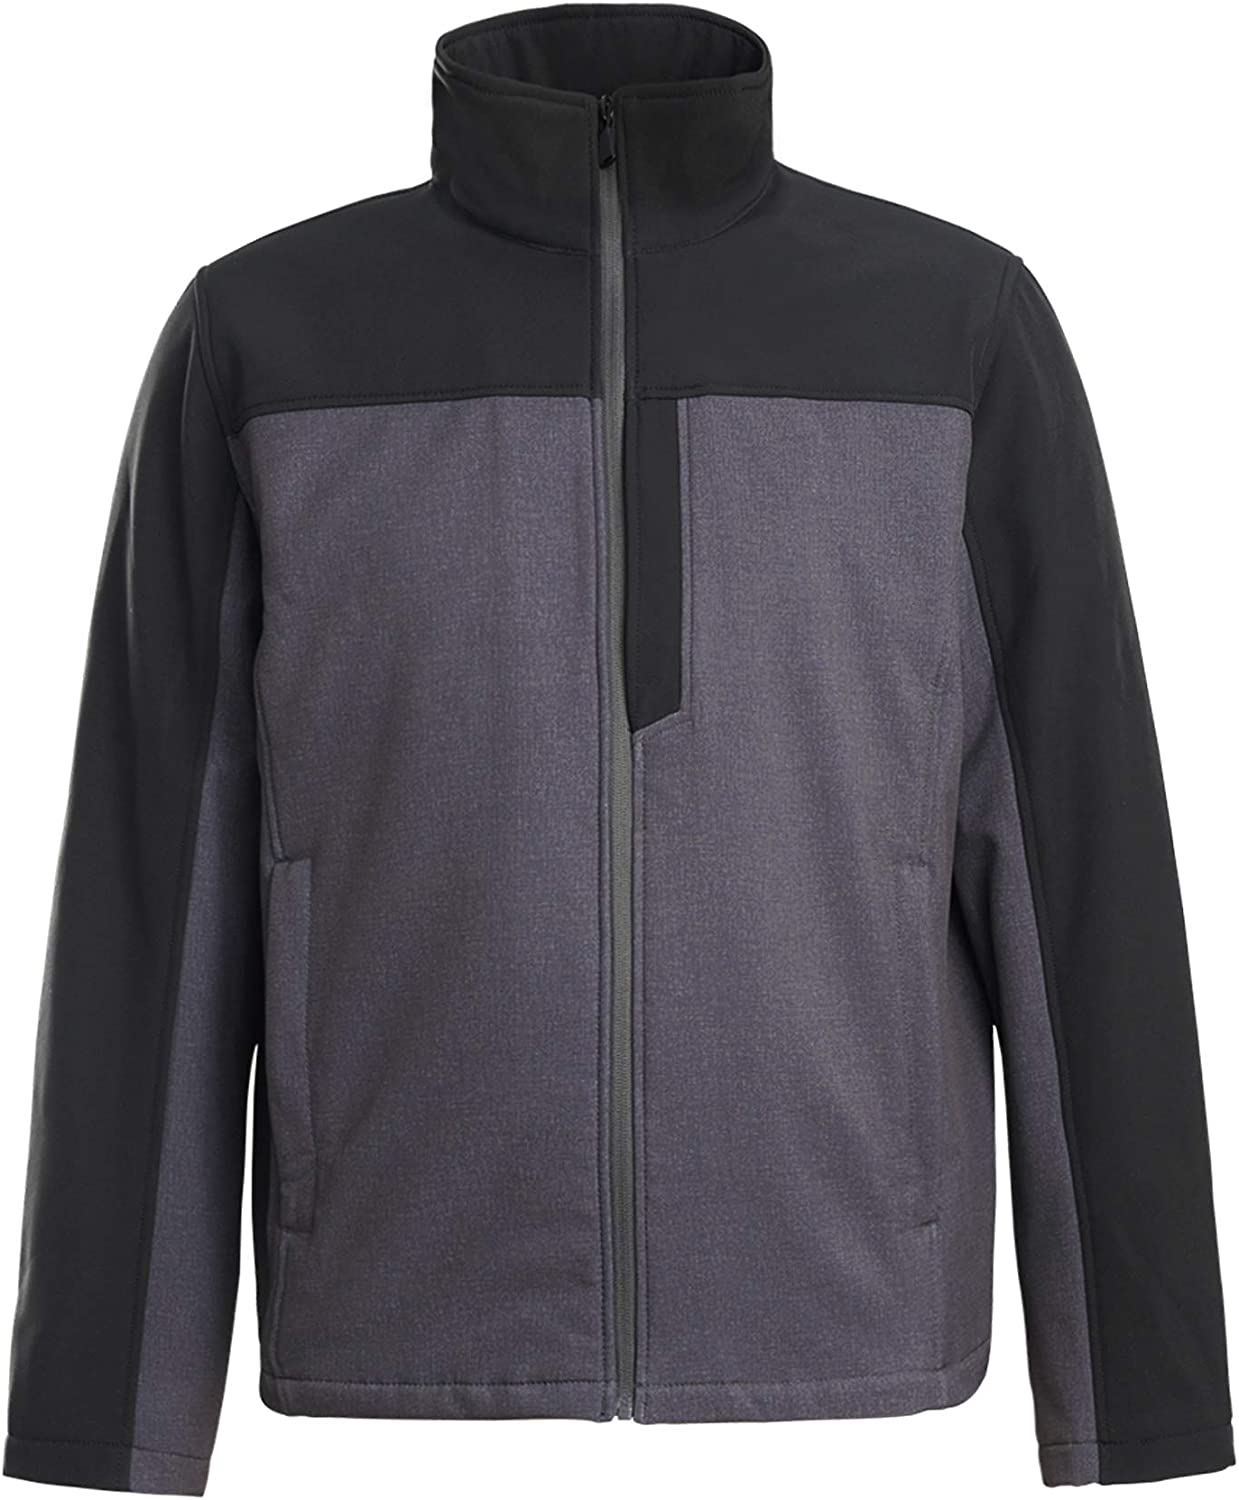 XPOSURZONE Men's Water Resistance Softshell 3-Layer Colorblock Jacket